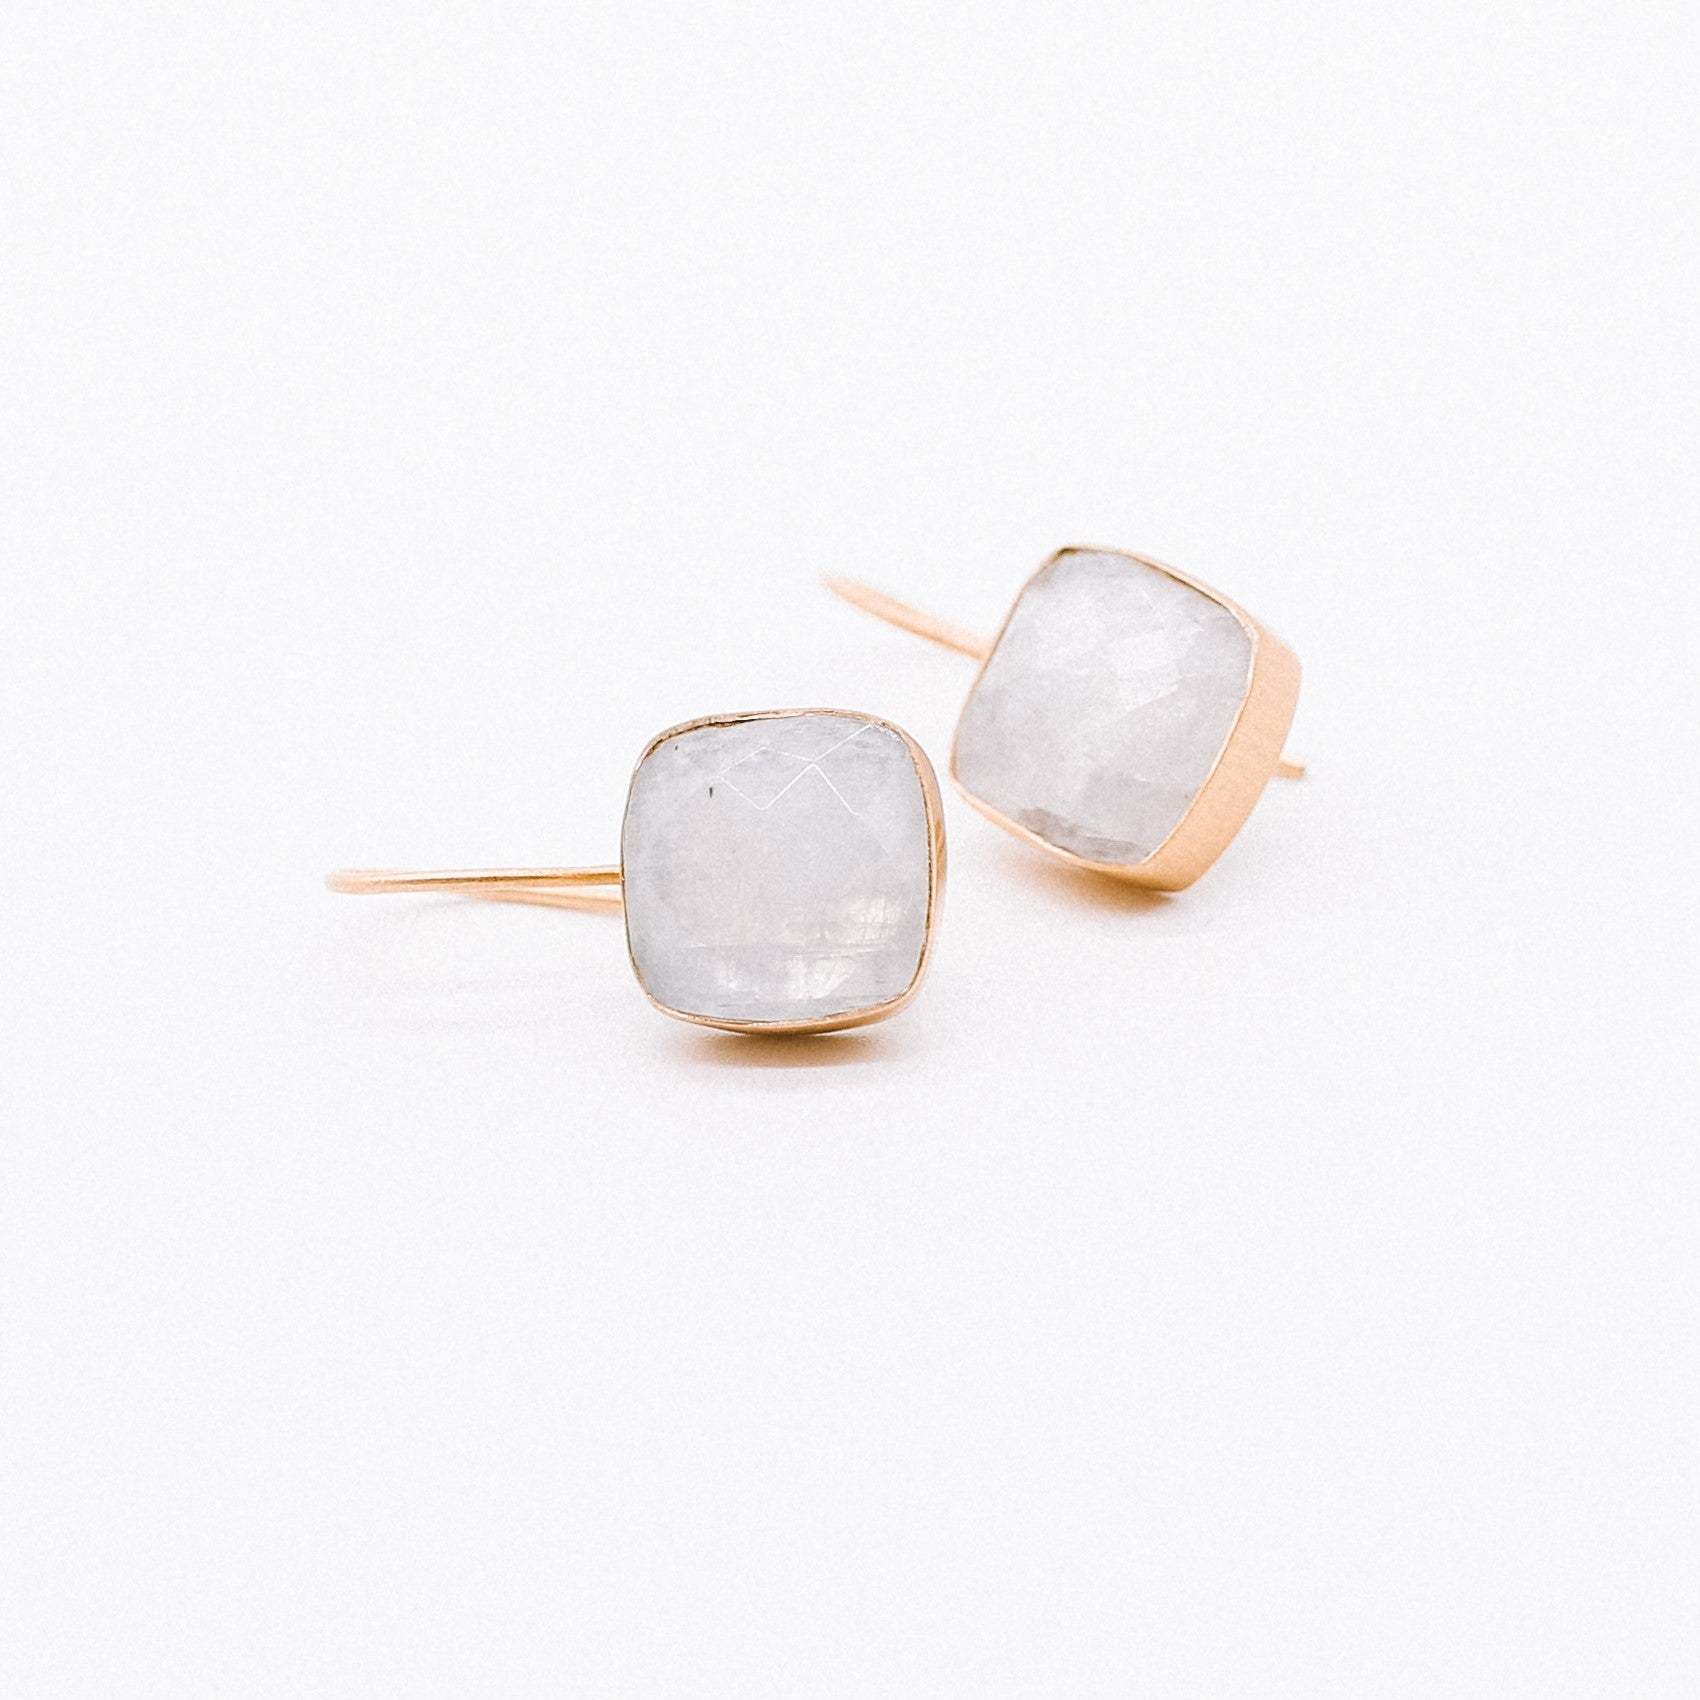 Daisy Earrings - Square Rainbow Moonstone handmade gold plated Katy Valentine - Shop with Sparkle & The Sinner